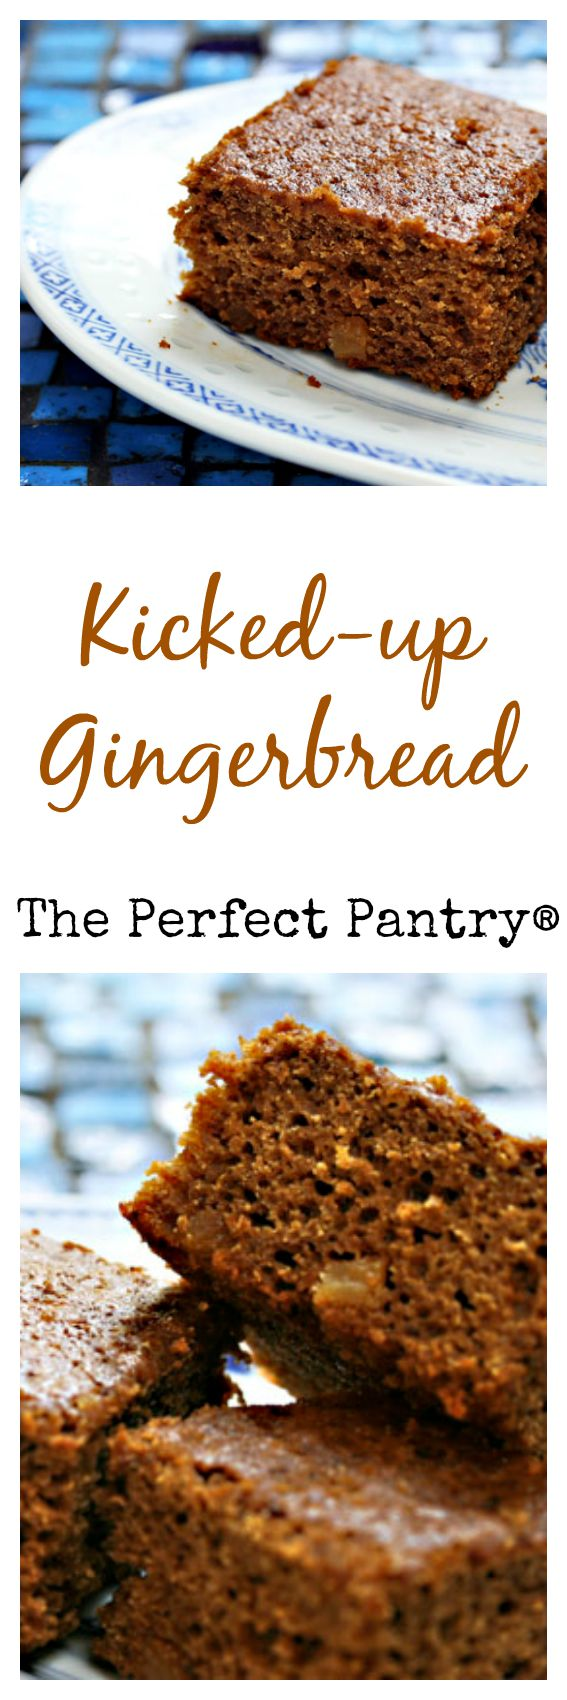 Kicked-up gingerbread starts with a box mix! From The Perfect Pantry.